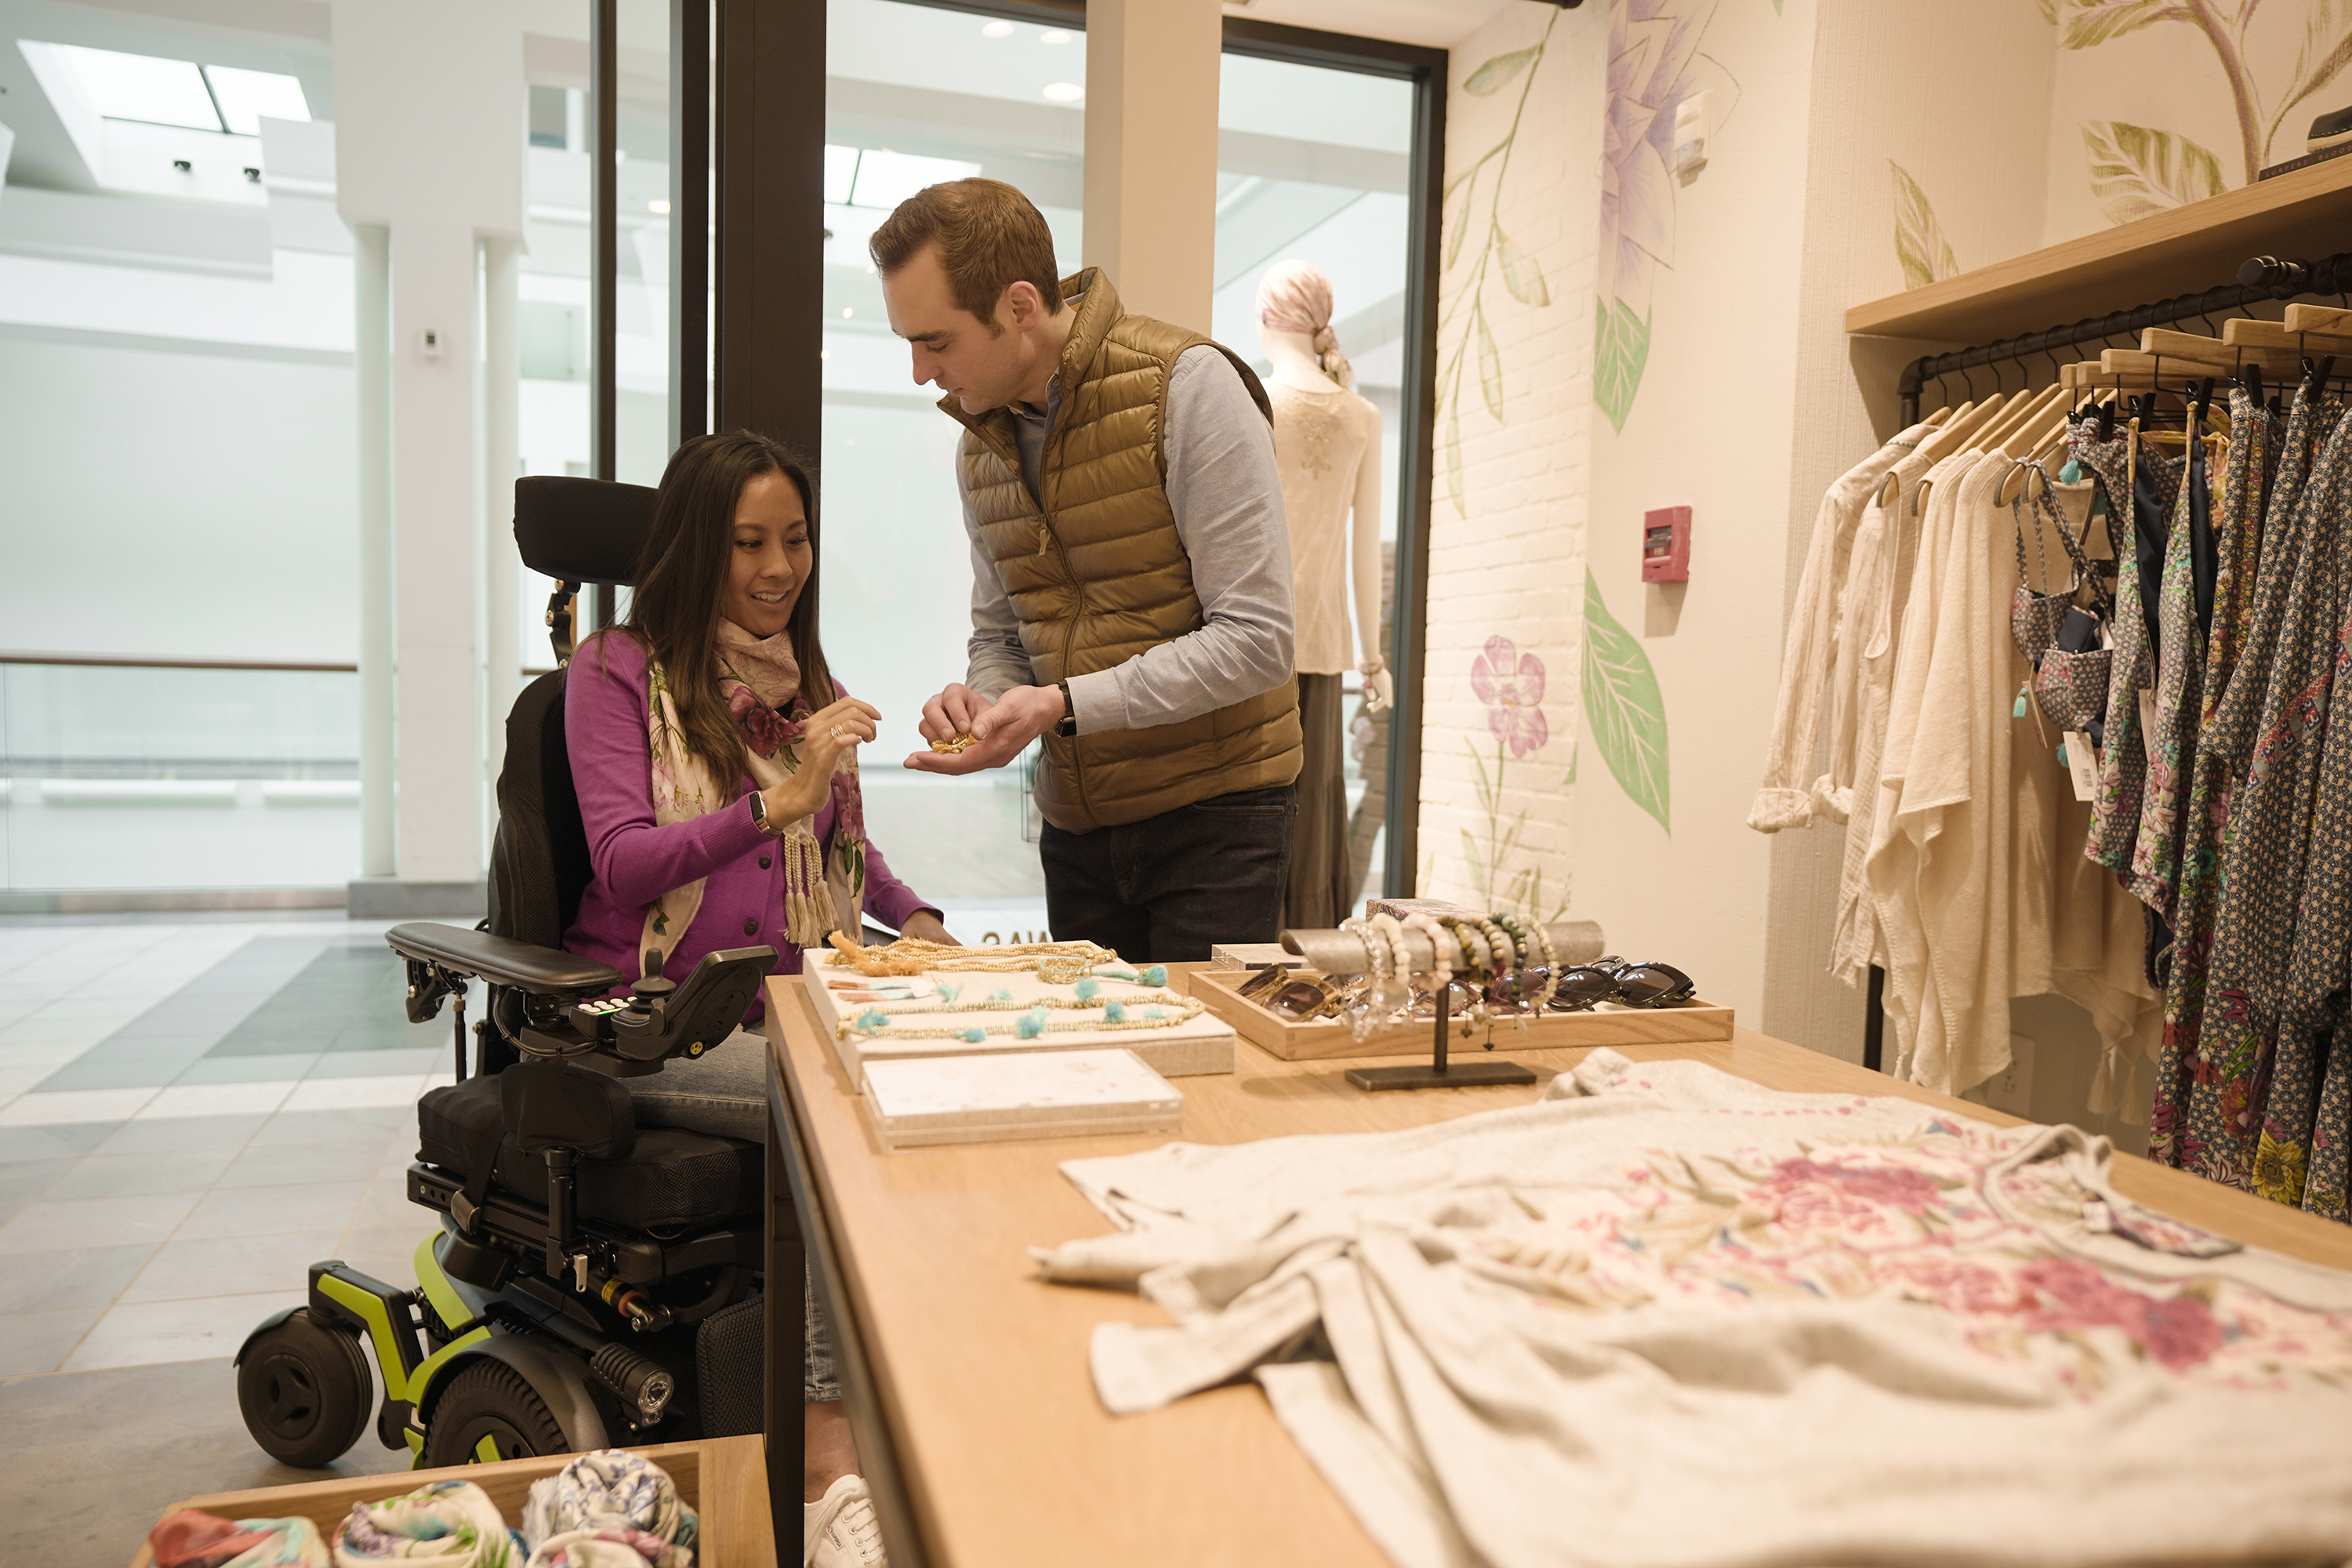 An Asian woman using a Corpus F3 power chair shops for jewelry with a Caucasian man. She is wearing a pink sweater and jeans. She smiles while the man holds some jewelry for her to look at. The man wears a gold puffer vest and black jeans.